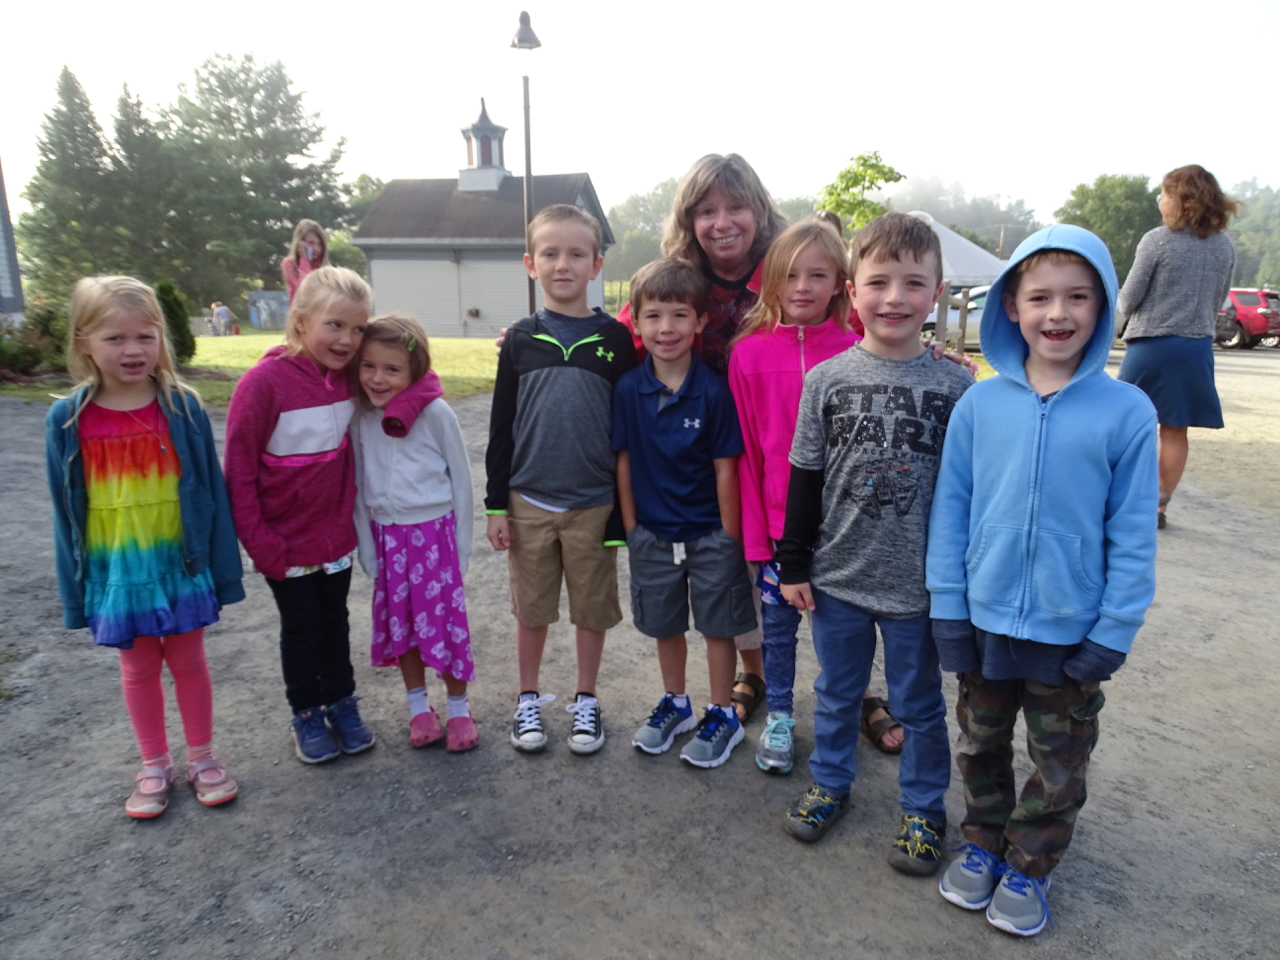 Mrs. Leferrier welcomed her first grade class before assembly: Isla, Lila, Cora, Cater, Will, Rylie, Conall,Micah